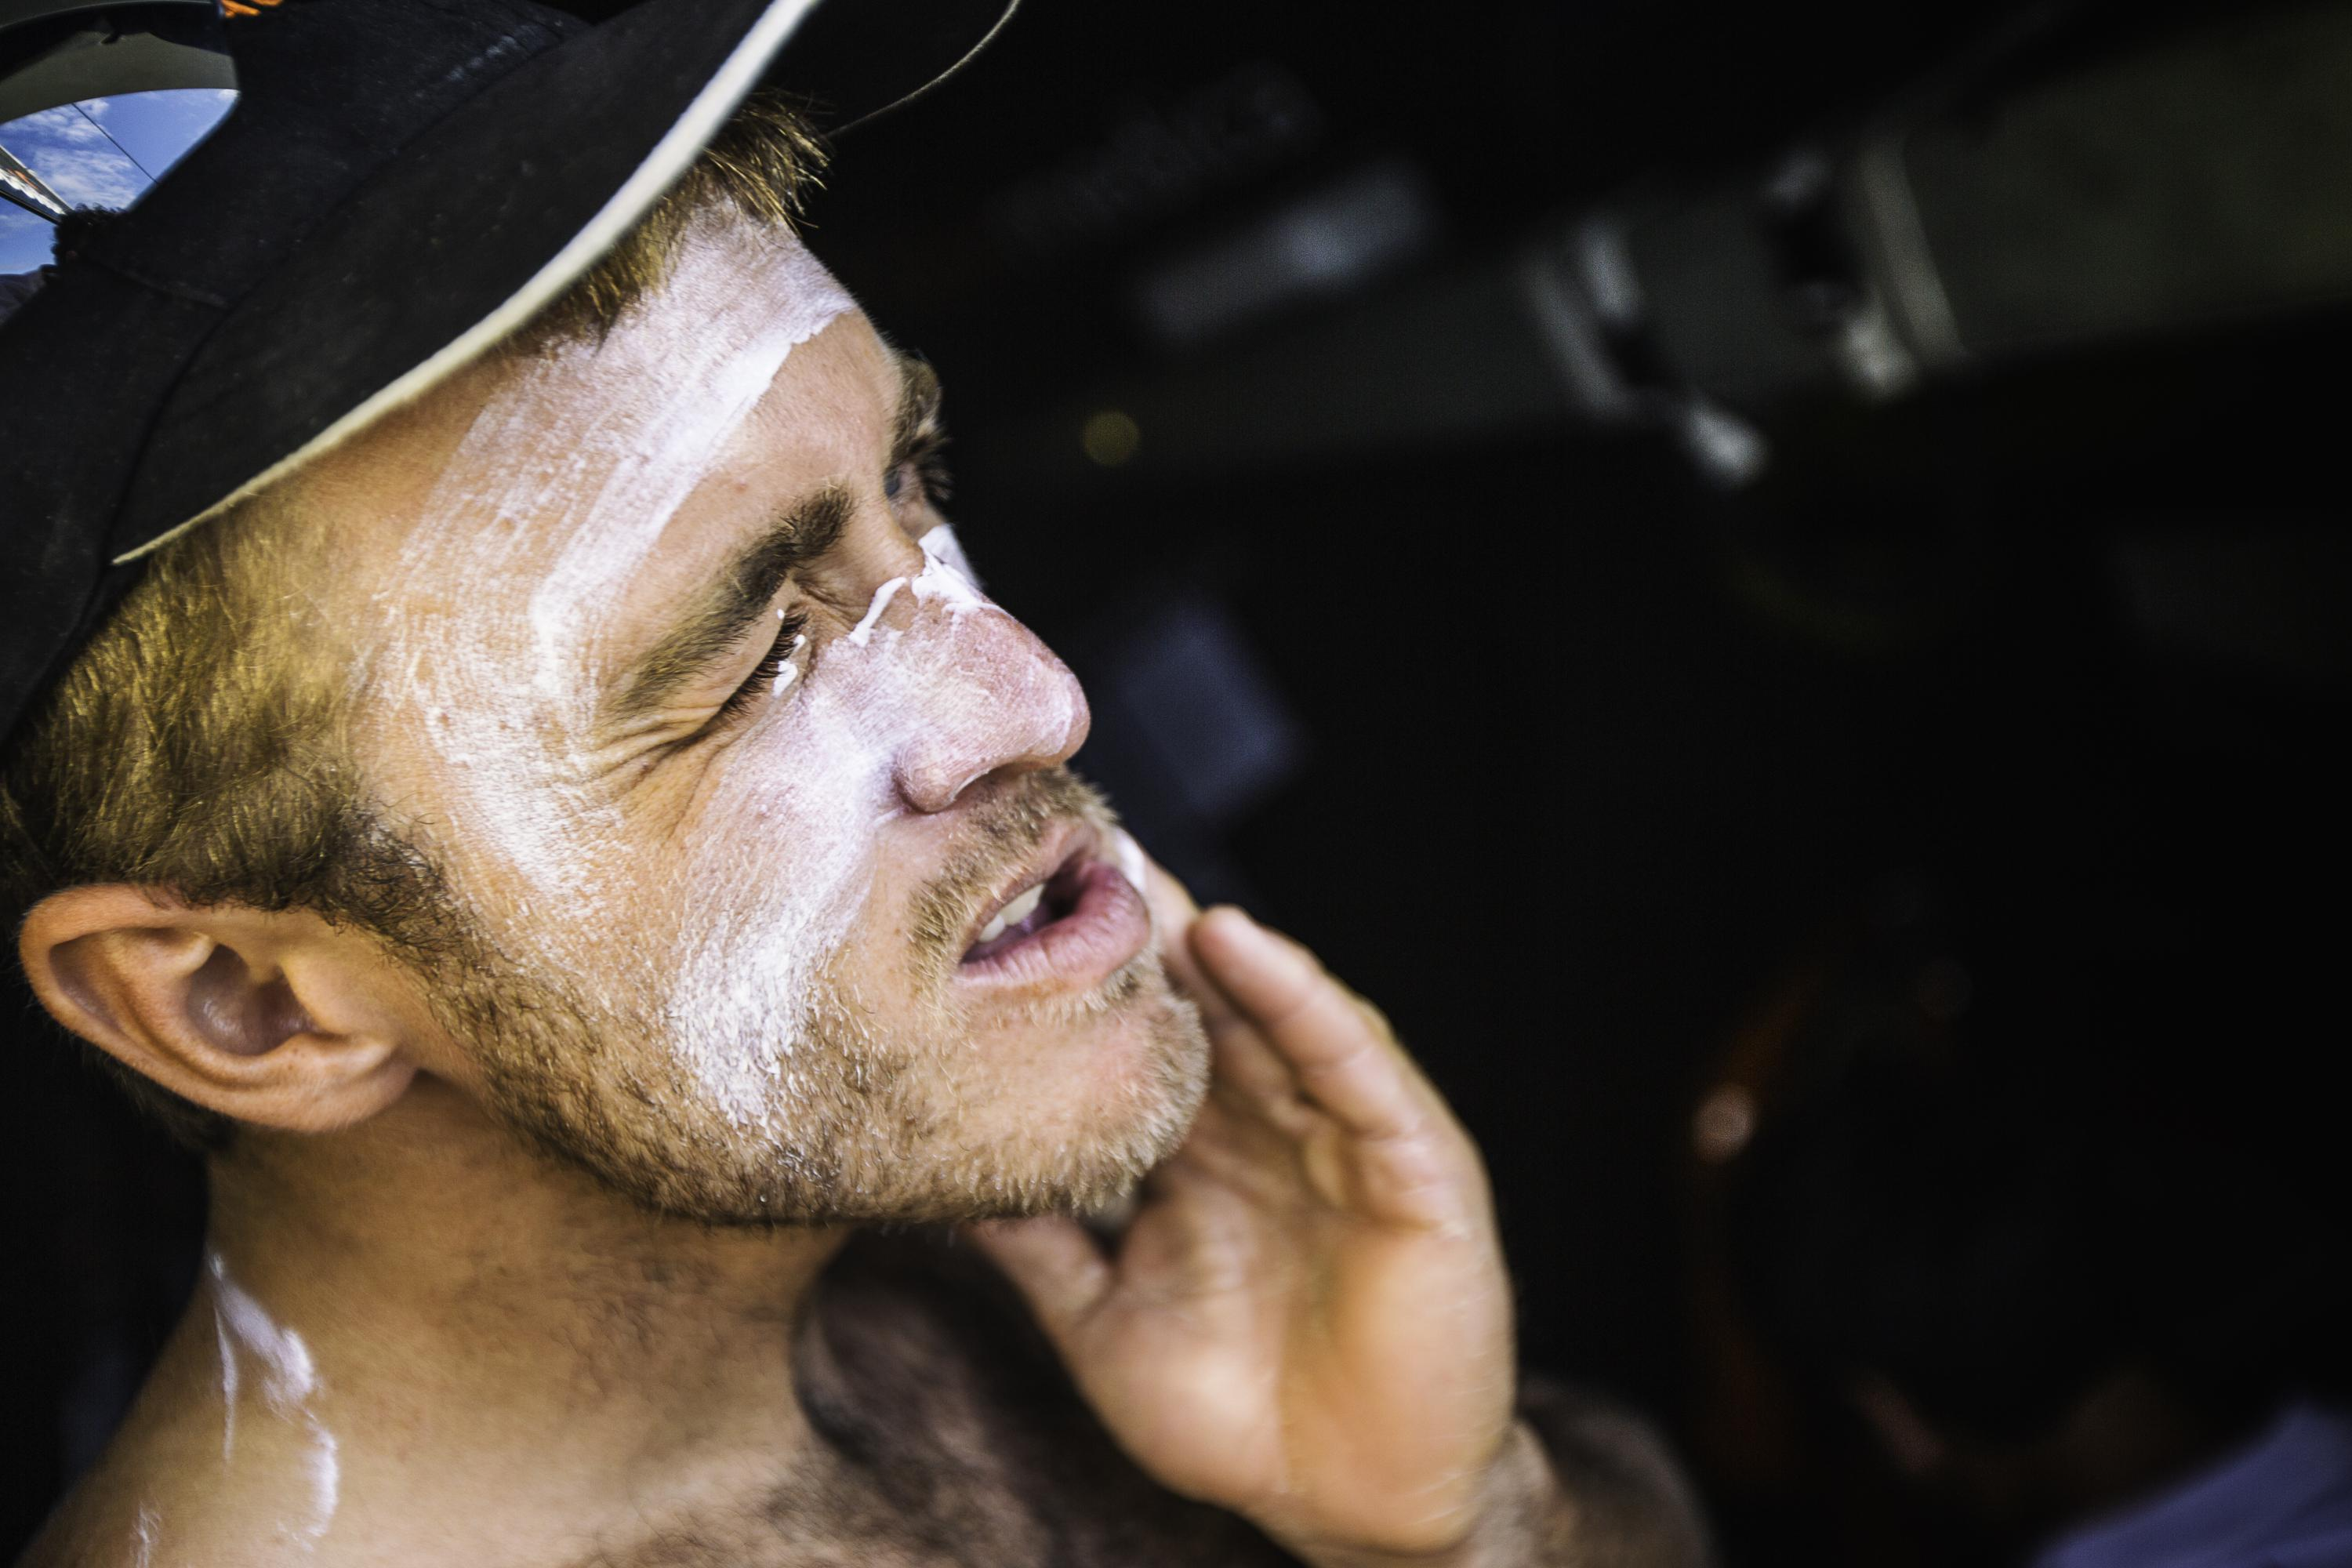 In this handout image provided by the Volvo Ocean Race, onboard Team Alvimedica. Nick Dana applying a healthy dose of sunscreen to protect his face from the intense sun of the tropics during Leg 6 from Itajai to Newport starting on April 19, 2015 in Itajai, Brazil.